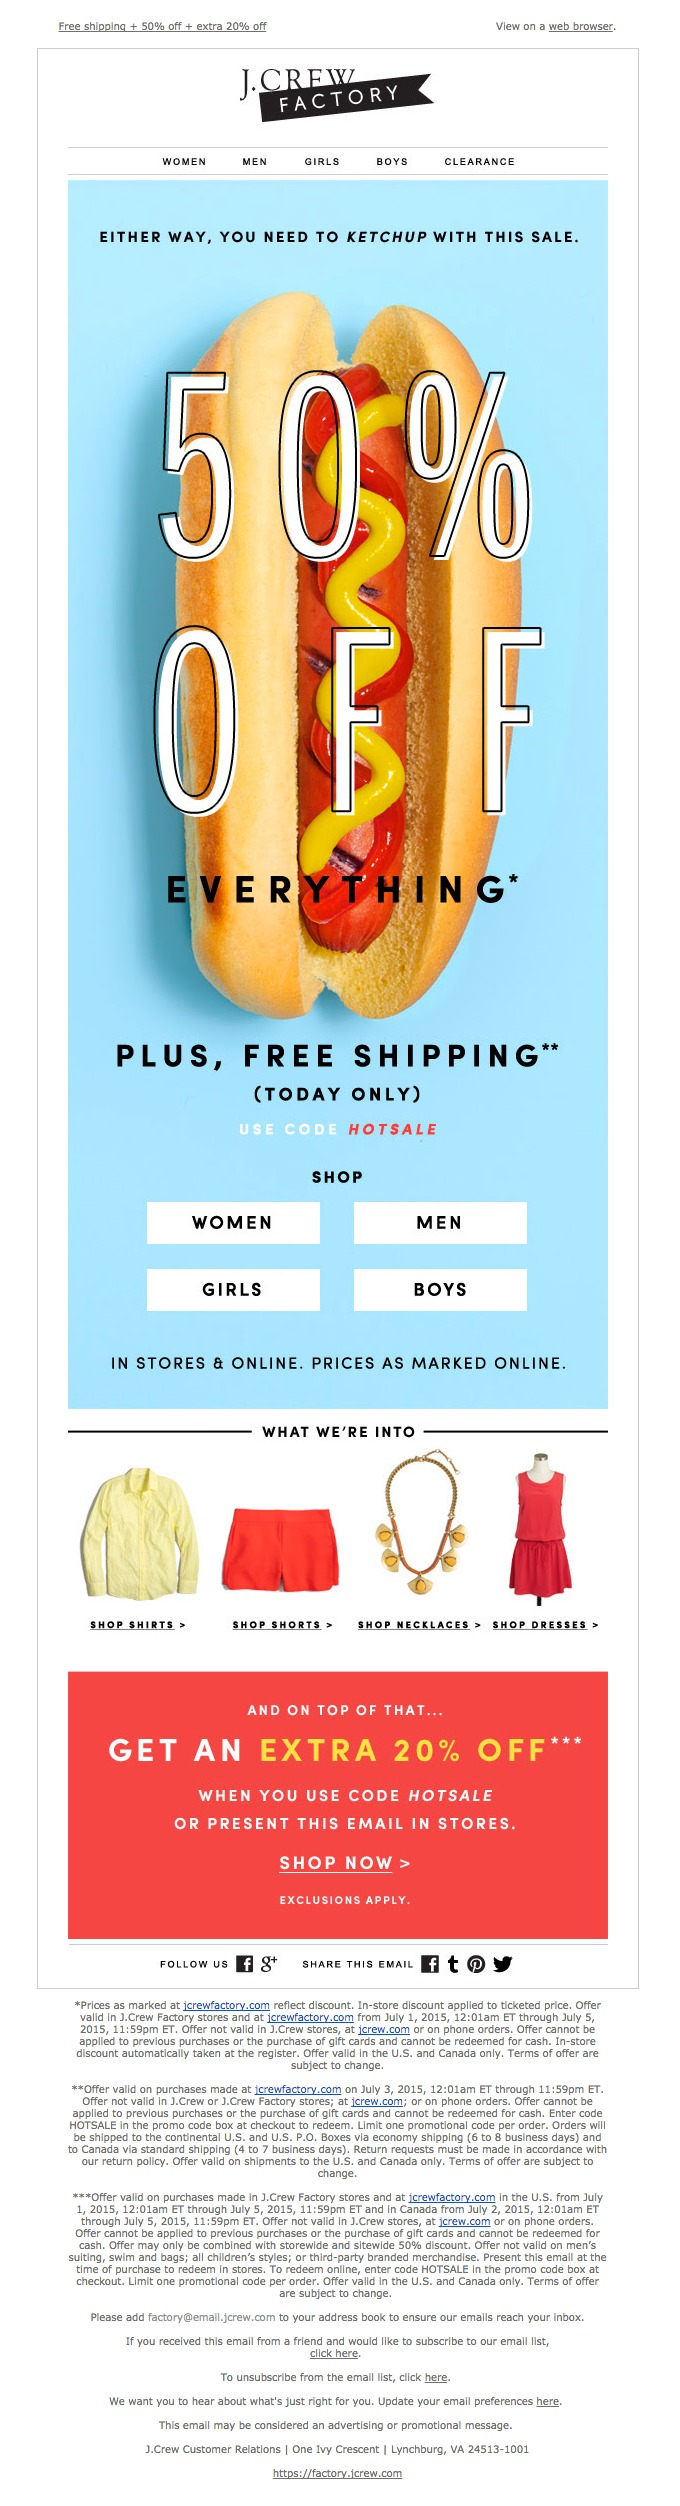 example of a good ecommerce email.